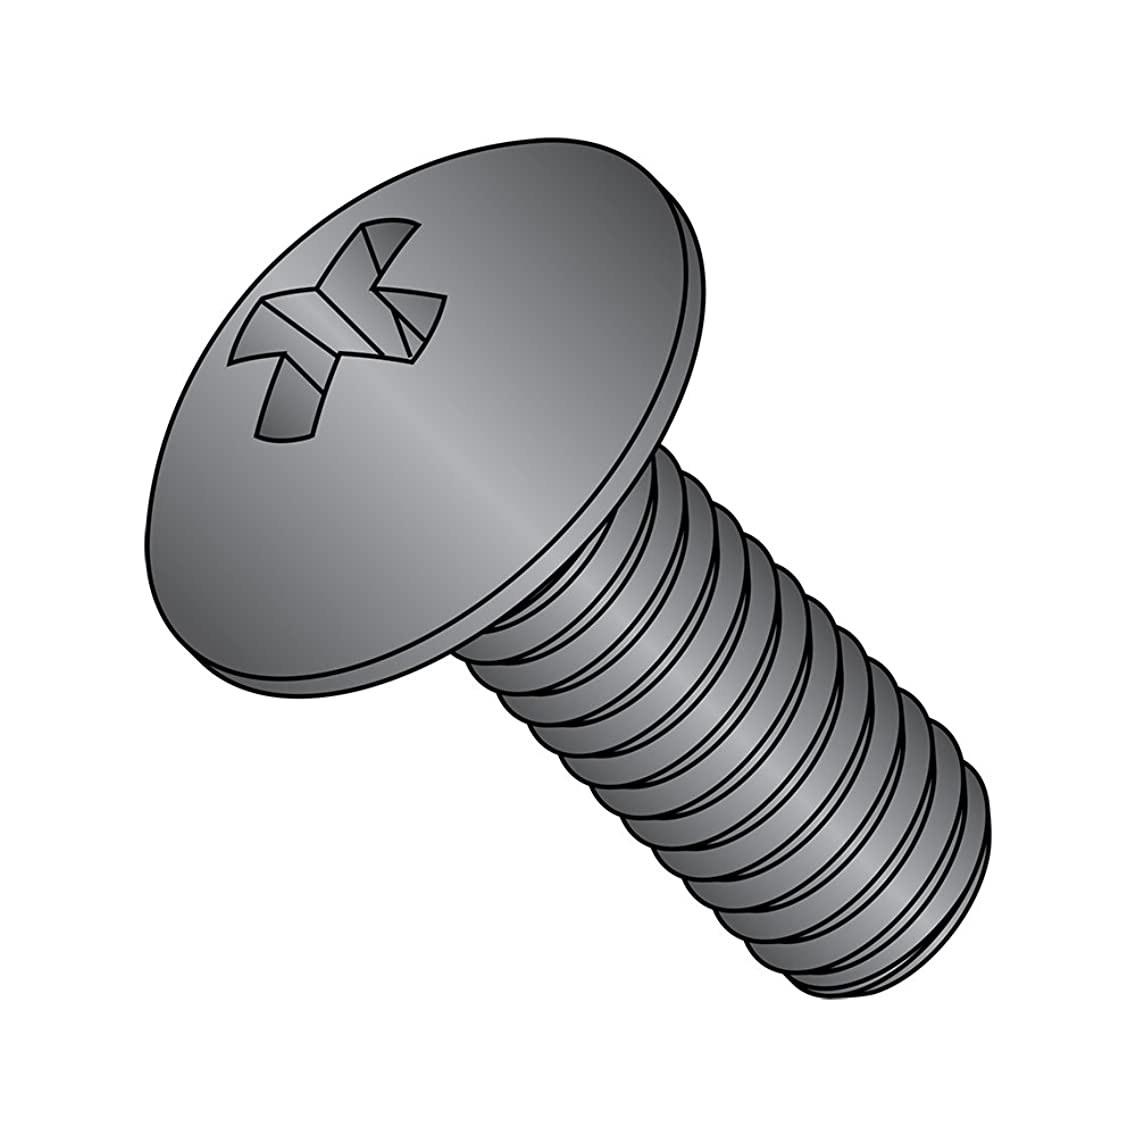 Steel Truss Head Machine Screw, Black Oxide Finish, Meets ASME B18.6.3, #2 Phillips Drive, #10-24 Thread Size, 5/8